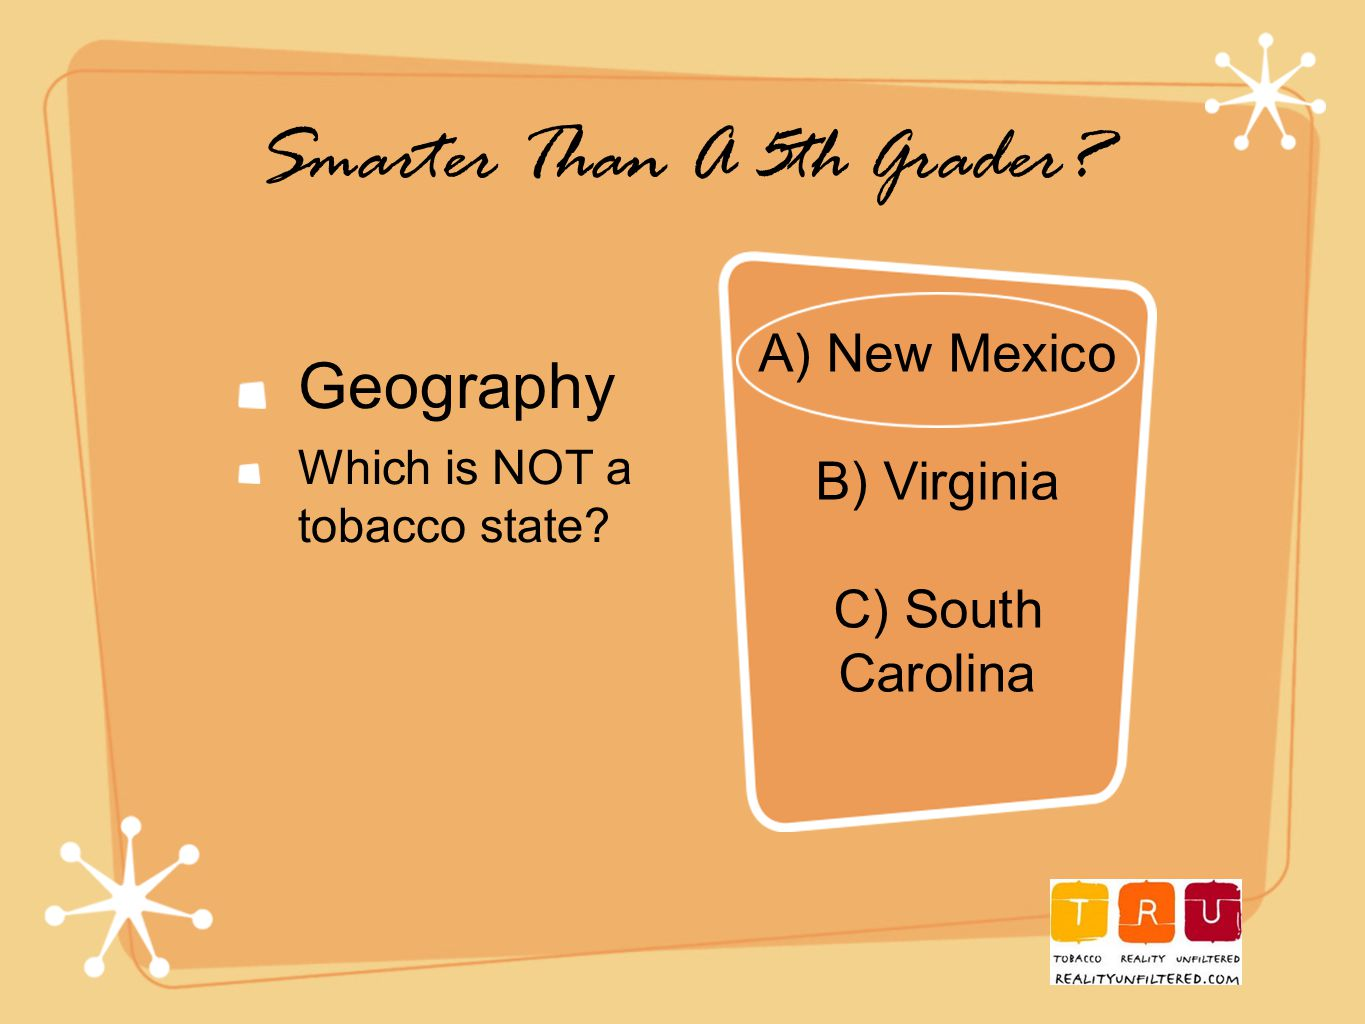 Smarter Than A 5th Grader. Geography Which is NOT a tobacco state.